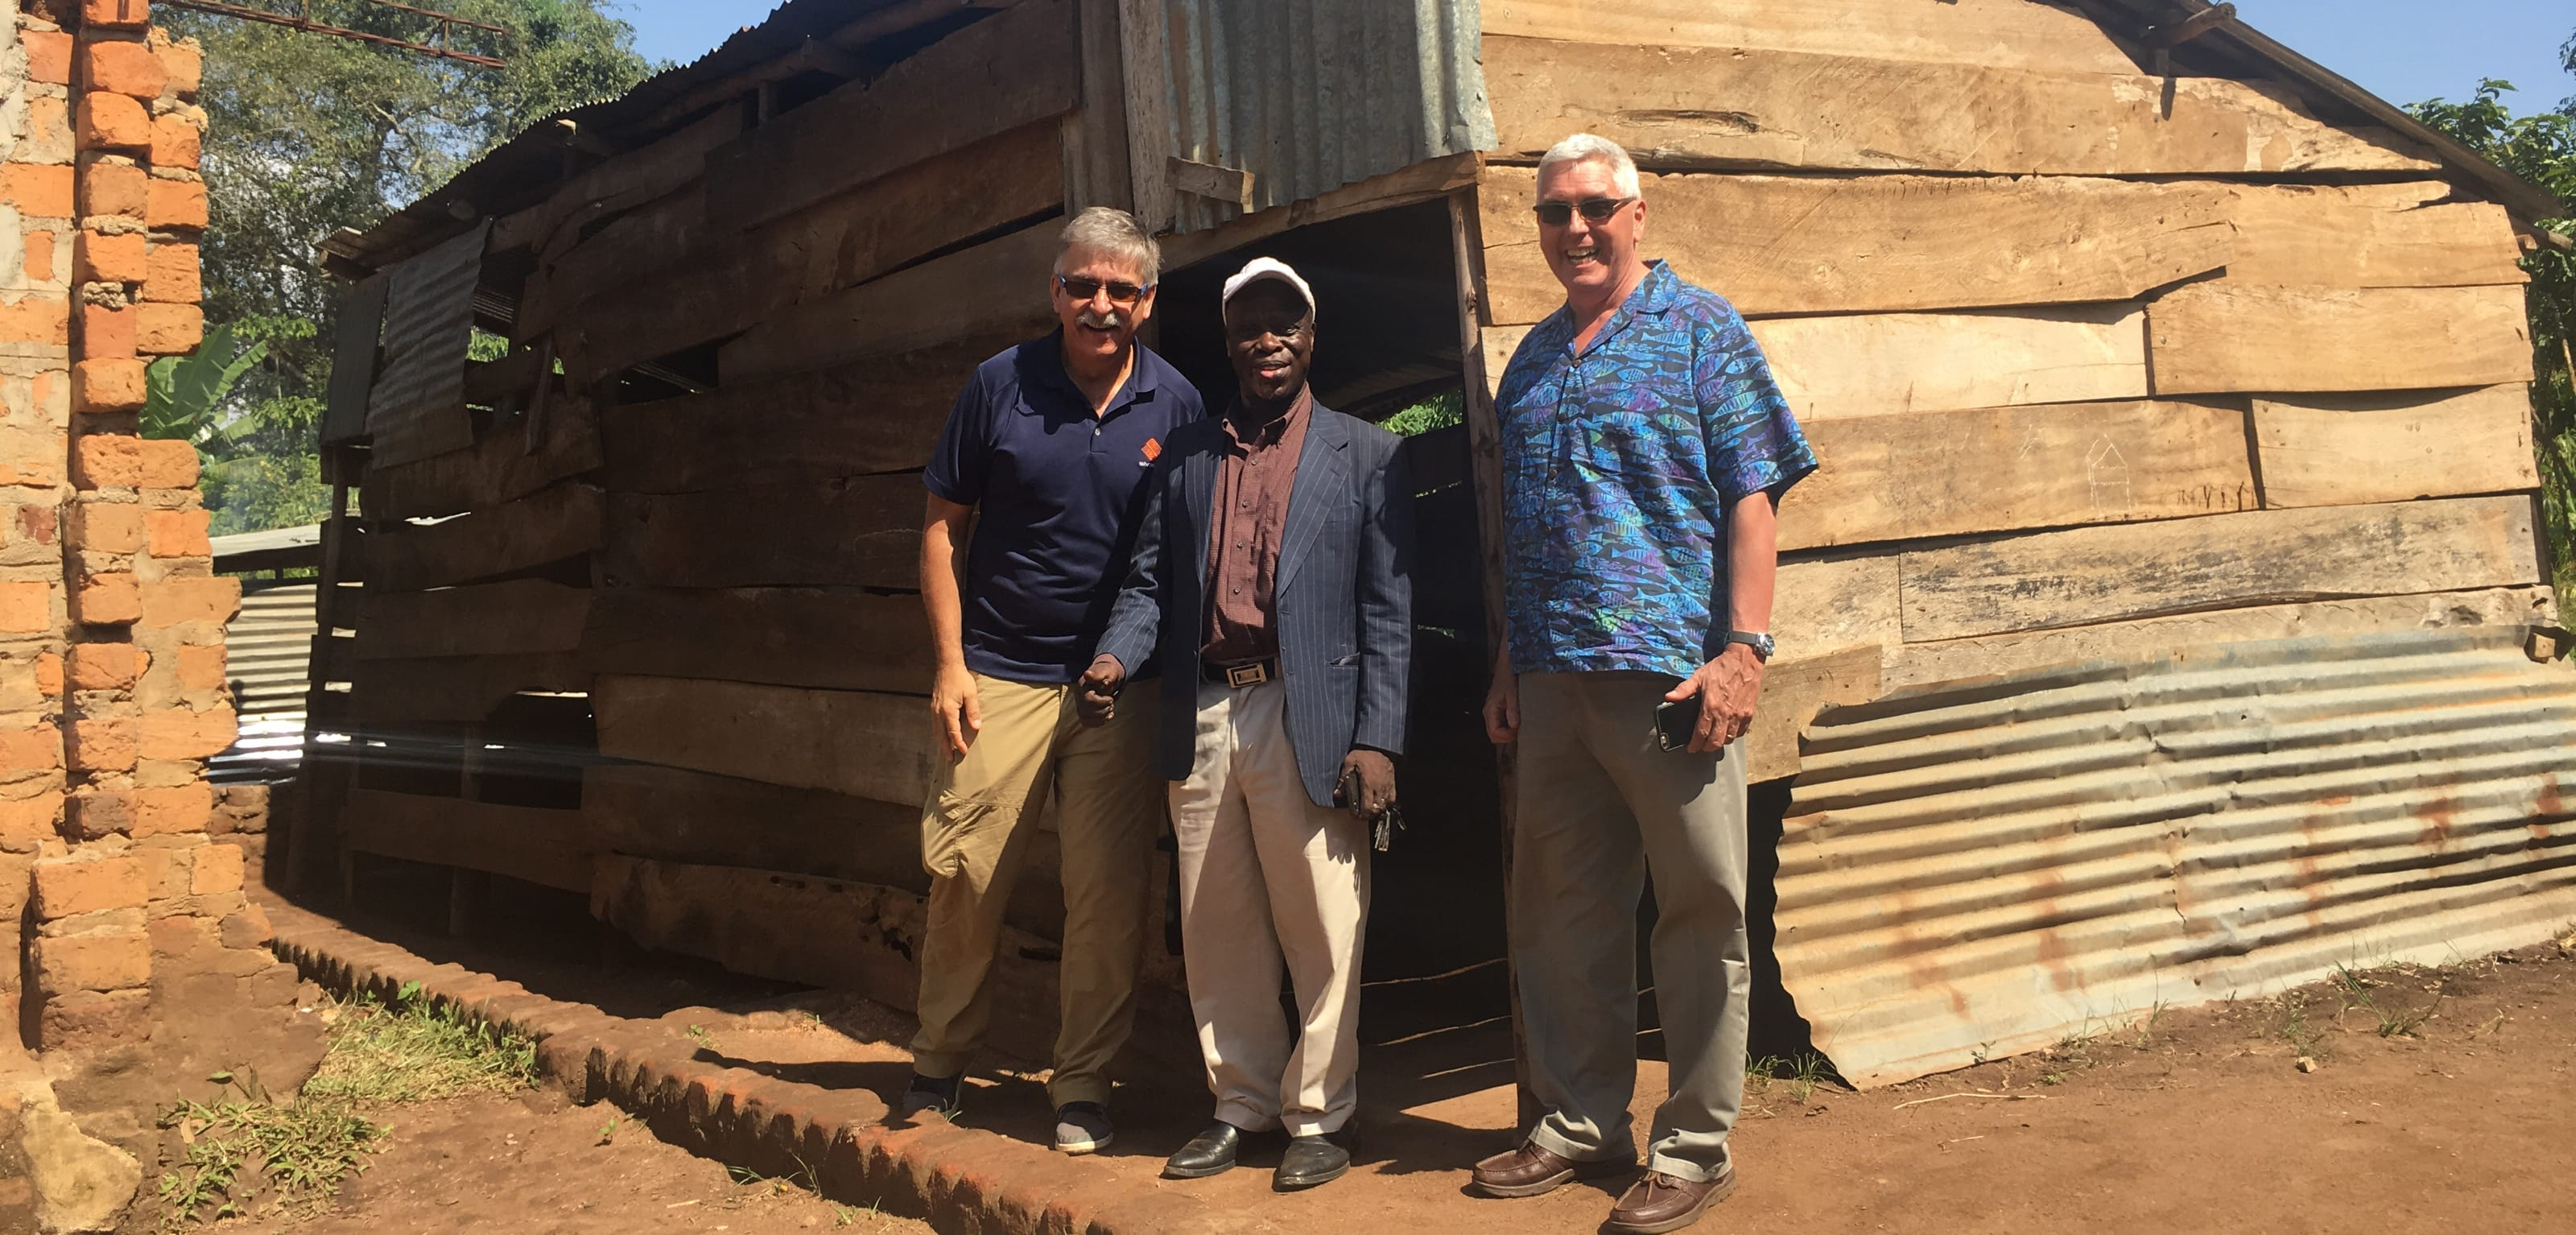 Silvacom founding partners, Bob and Tom, at Amazing Grace Orphanage School in Uganda